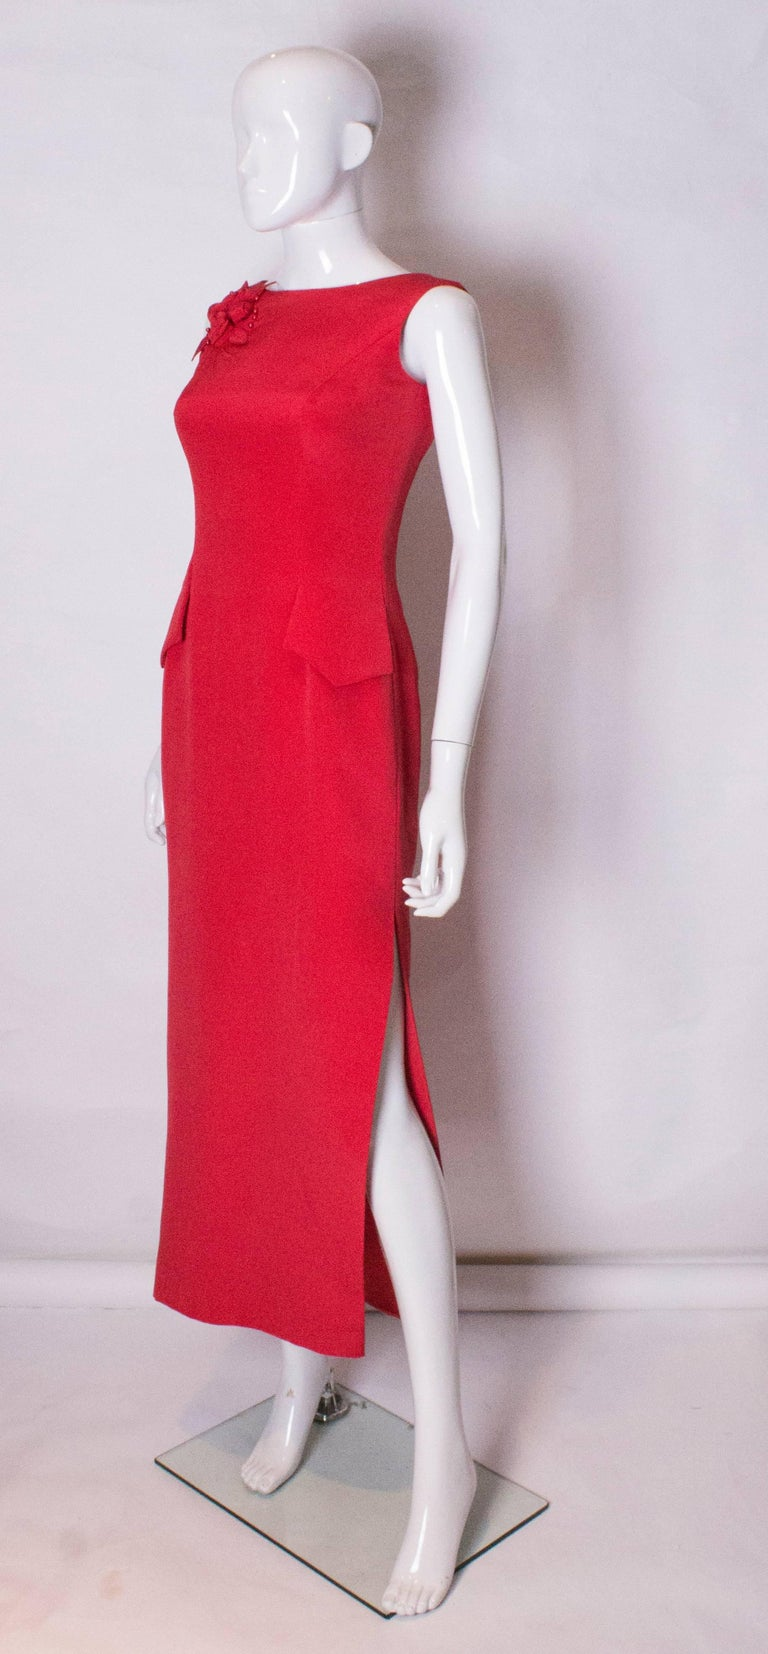 A stunning evening gown by British designer Tomasz Starzewski,  The dress has a slash neckline at the front and a deep v neckline at the back with a central back zip.It has a red floral and bead decoration on the right shoulder, a slit on the left